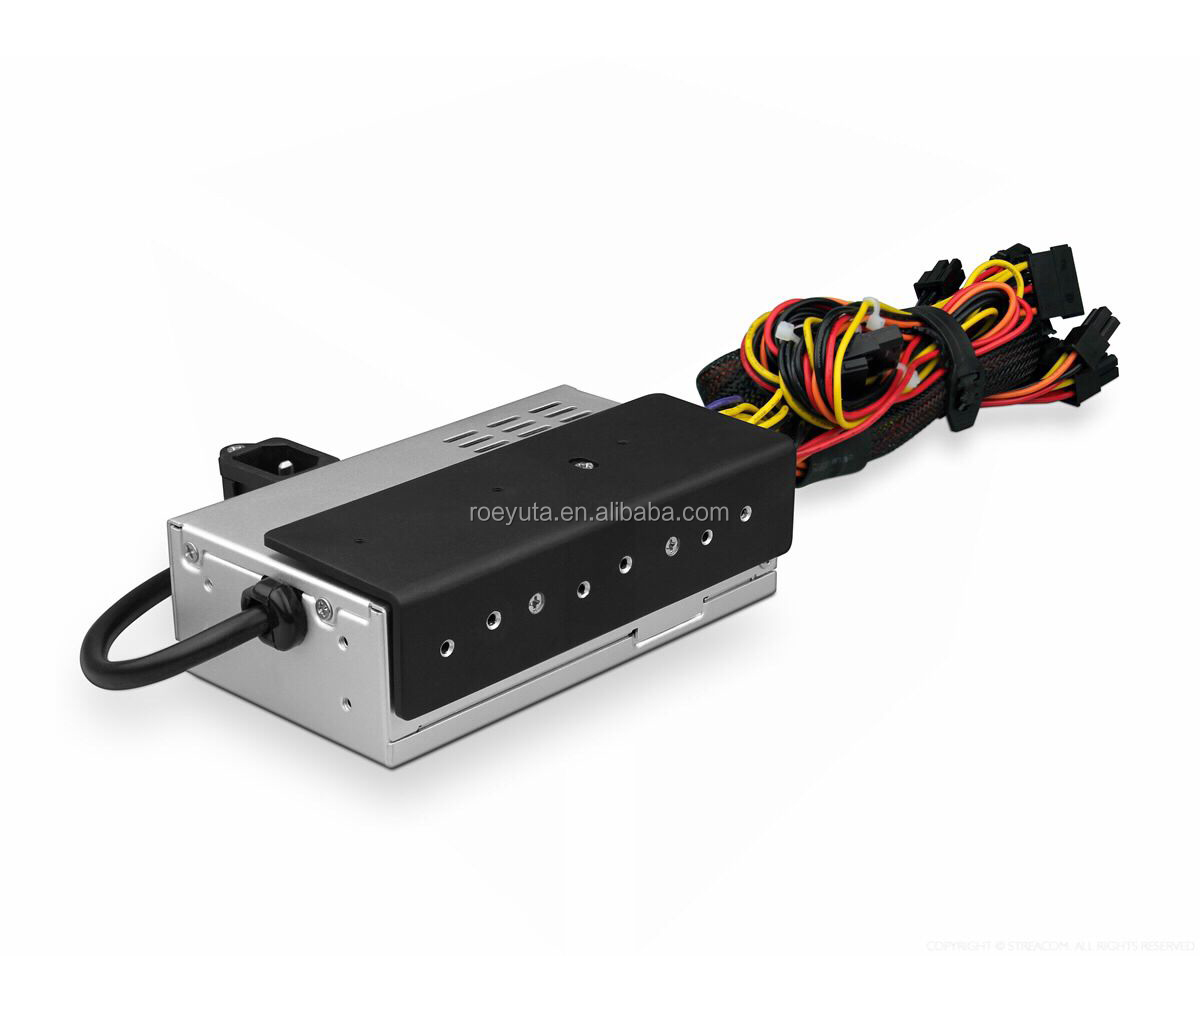 MINI ITX PSU  AC100-240V rated 250W 0 dB active PFC fan free flex power supply